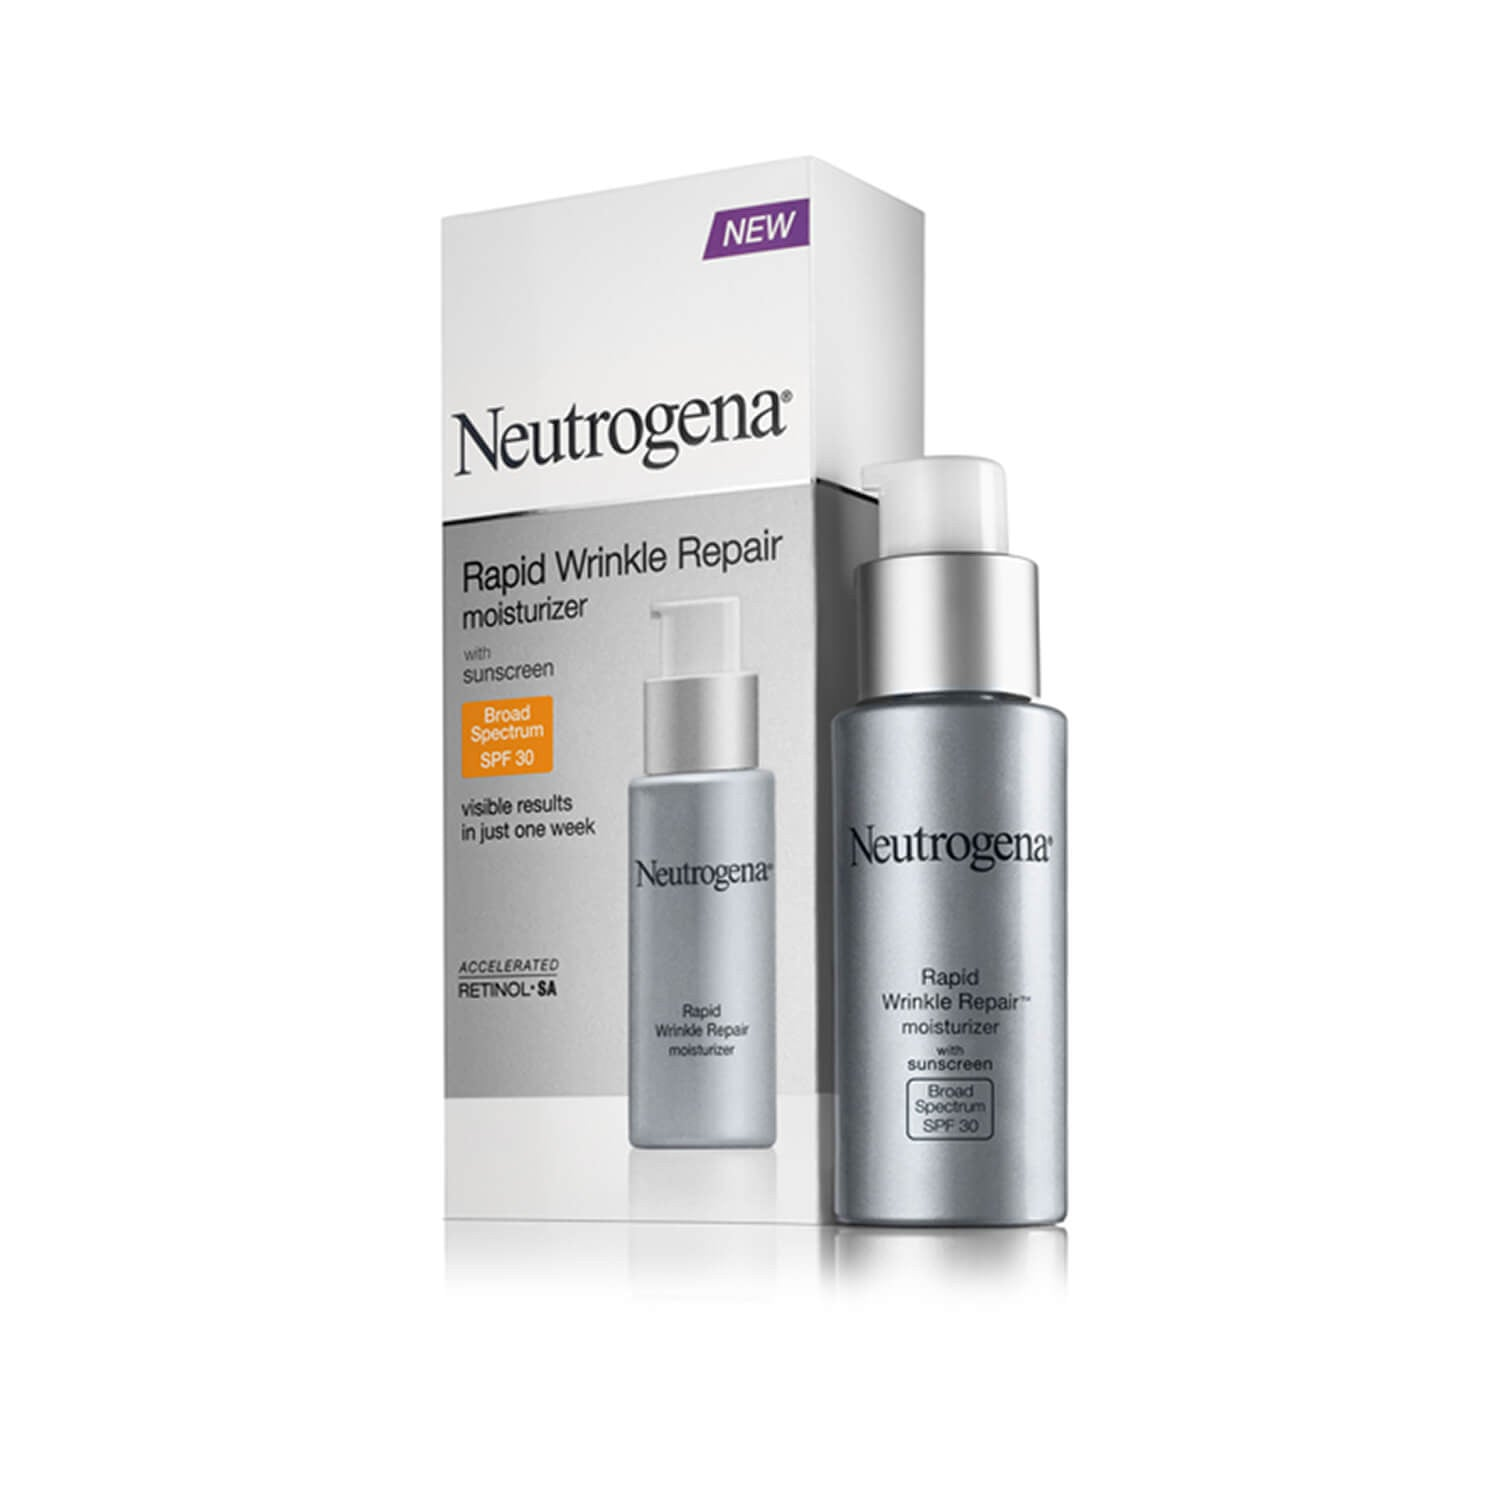 Neutrogena Rapid Wrinkle Repair Moisturizer Broad Spectrum SPF 30 Bottle